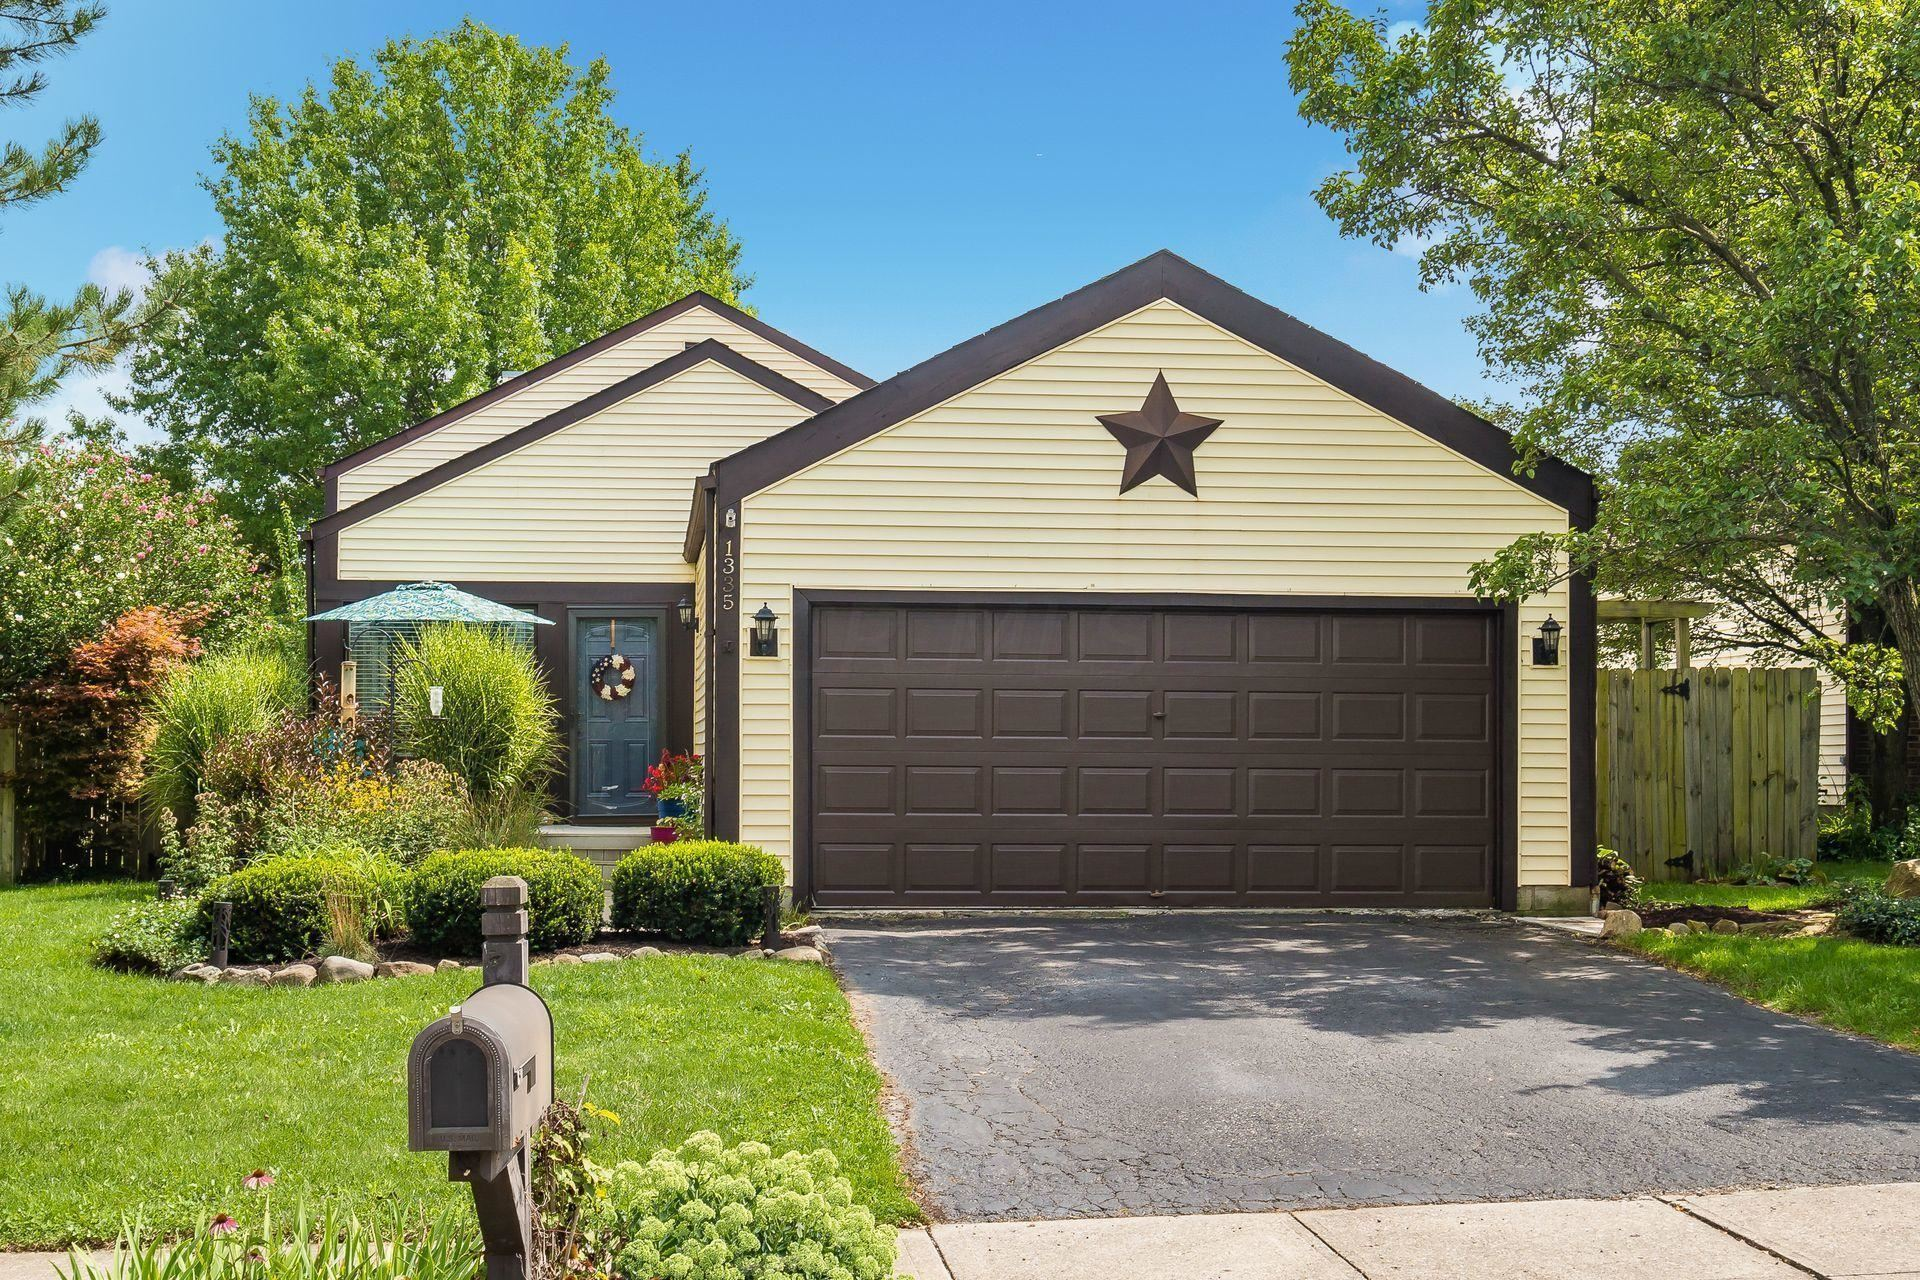 Photo of 1335 Clement Drive, Worthington, OH 43085 (MLS # 221032673)